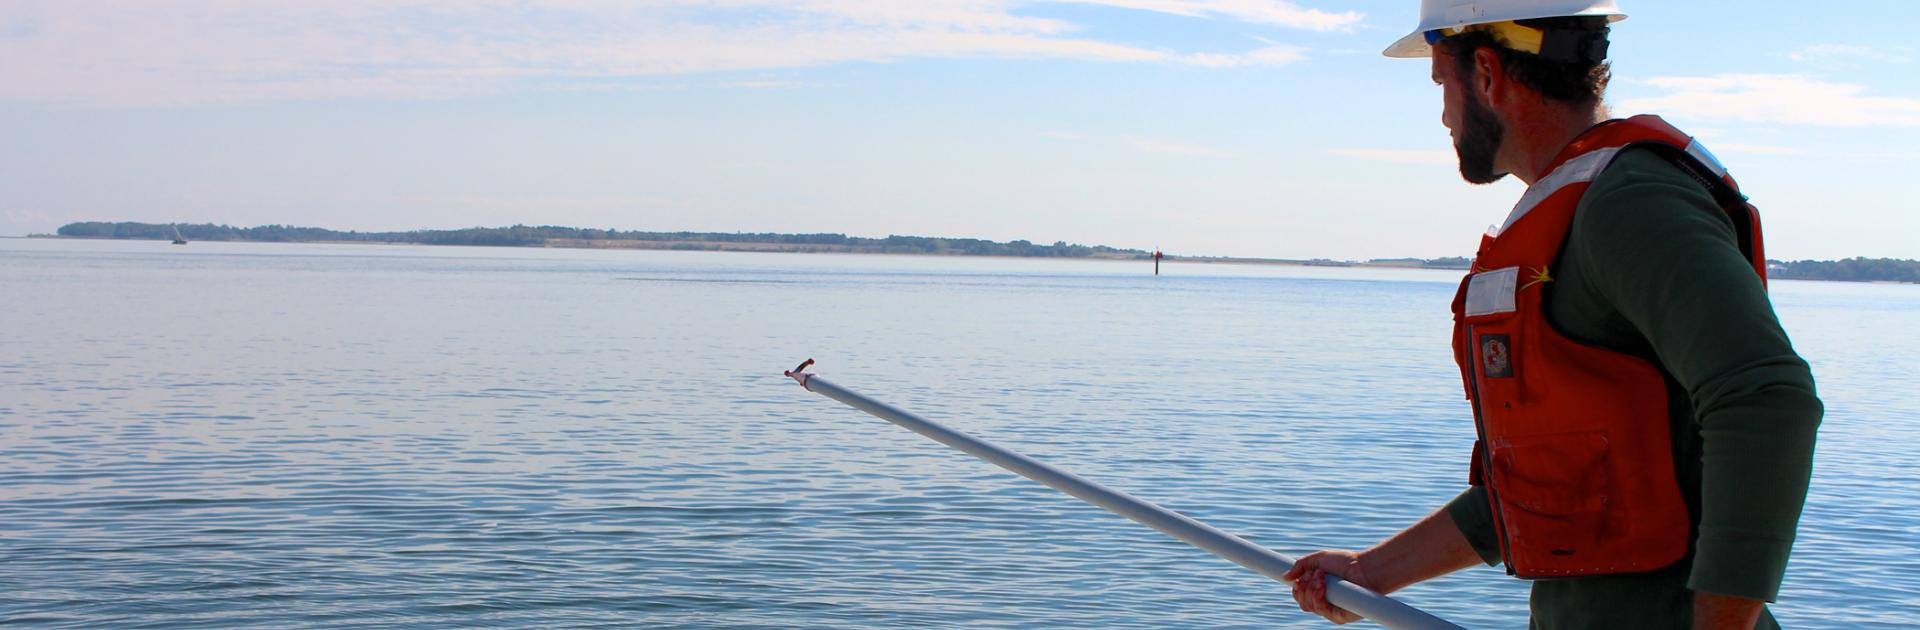 person standing in the water with a pole